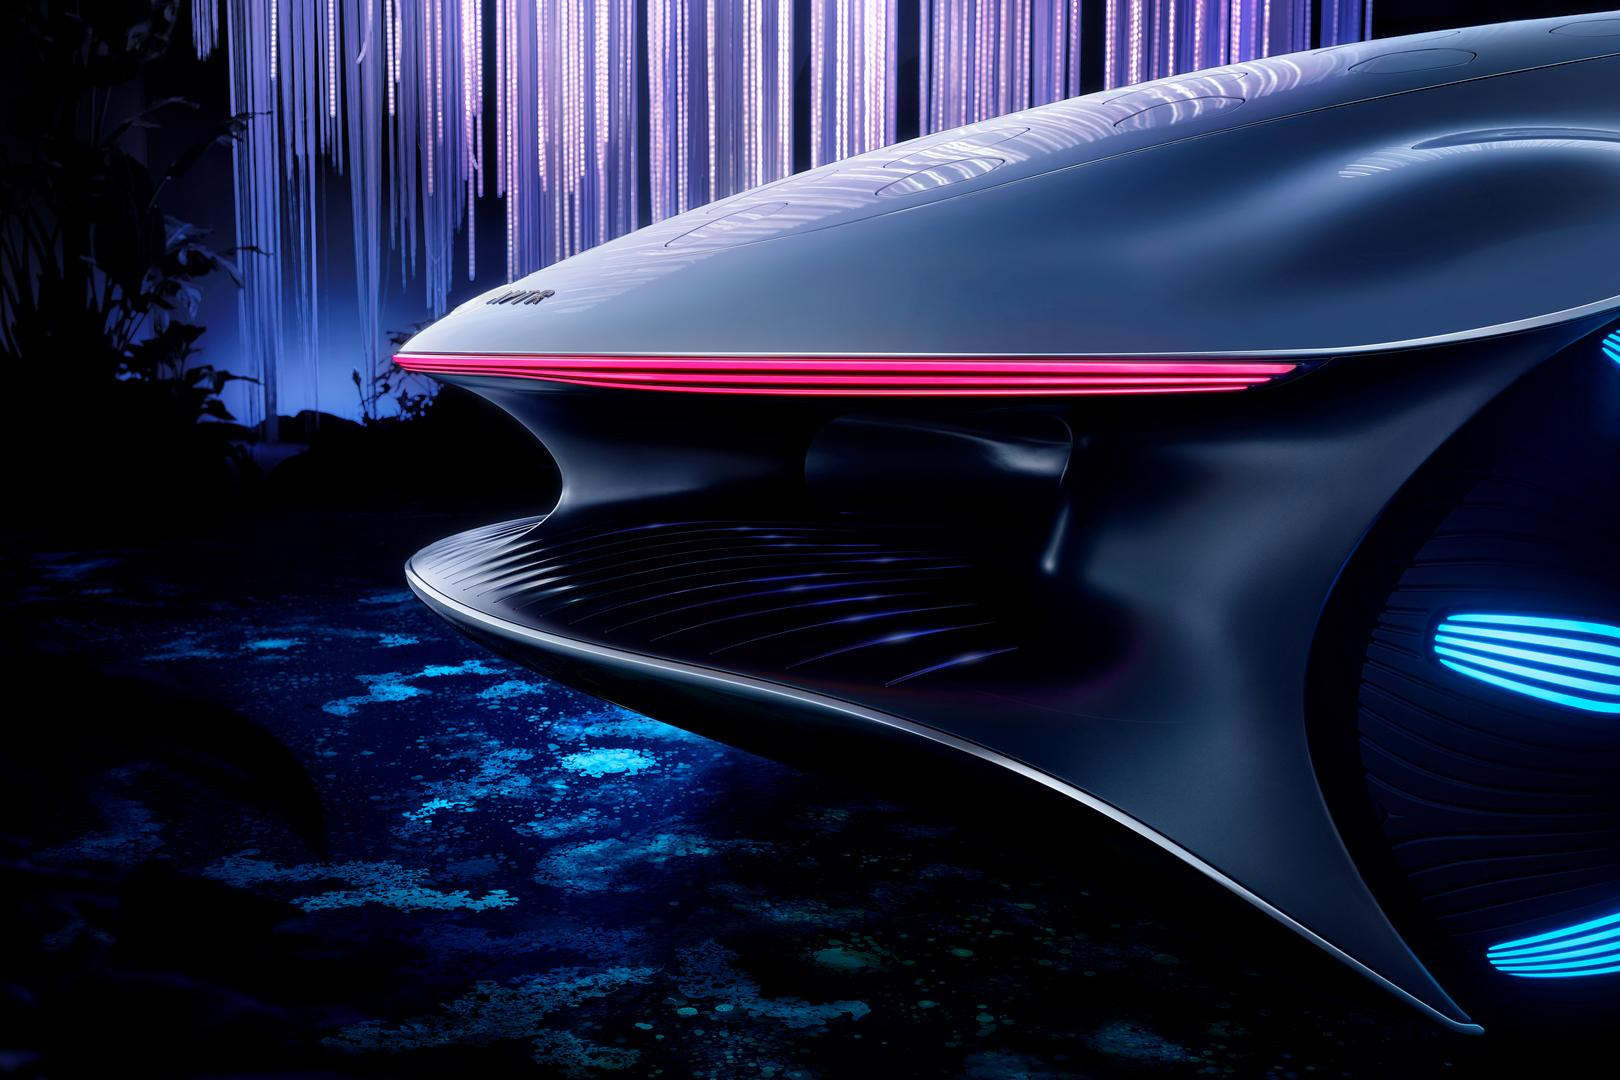 Mercedes-Benz VISION AVTR Rear Lights